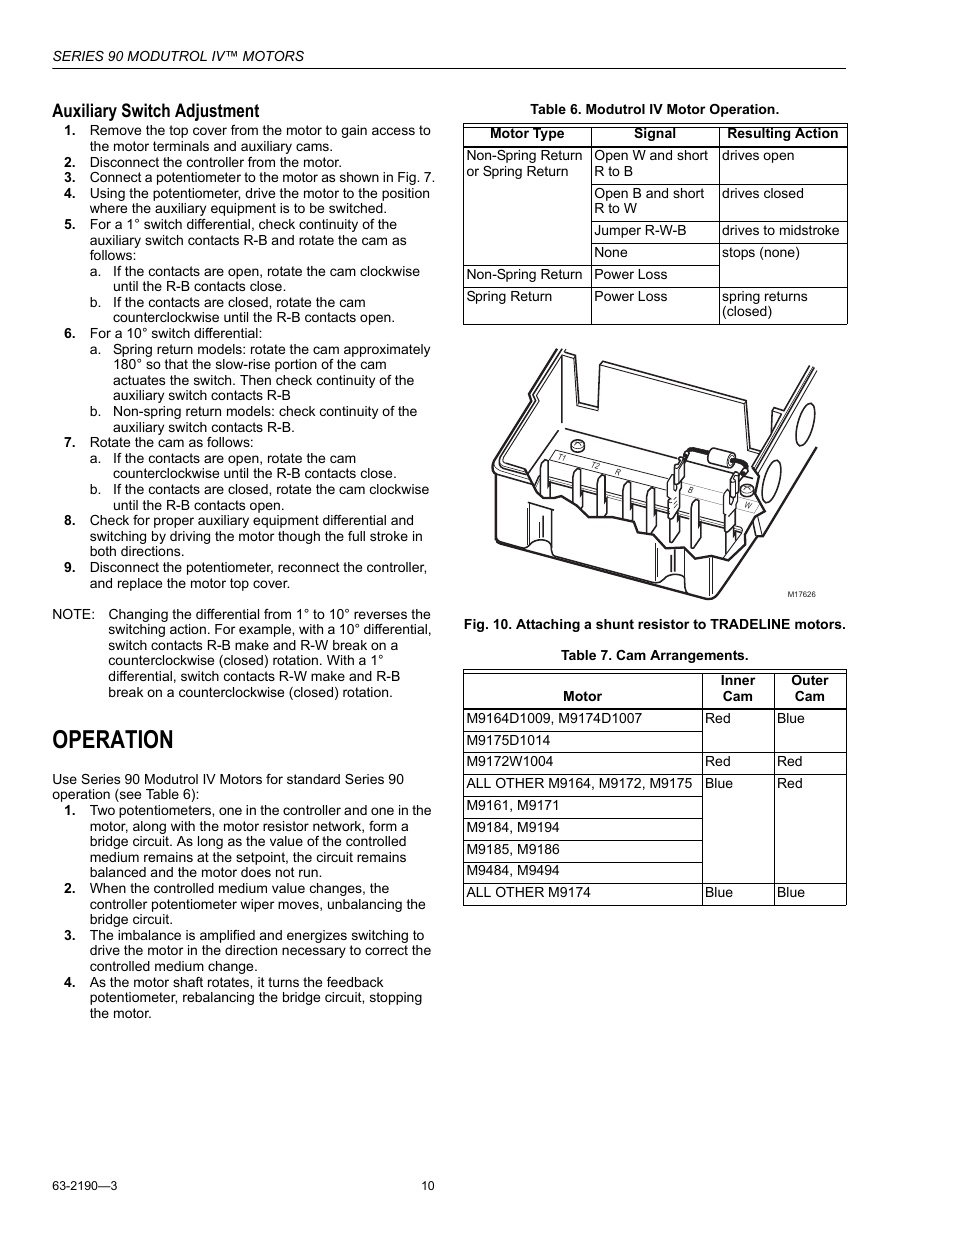 hight resolution of operation auxiliary switch adjustment honeywell modutrol iv motors series 90 user manual page 10 12